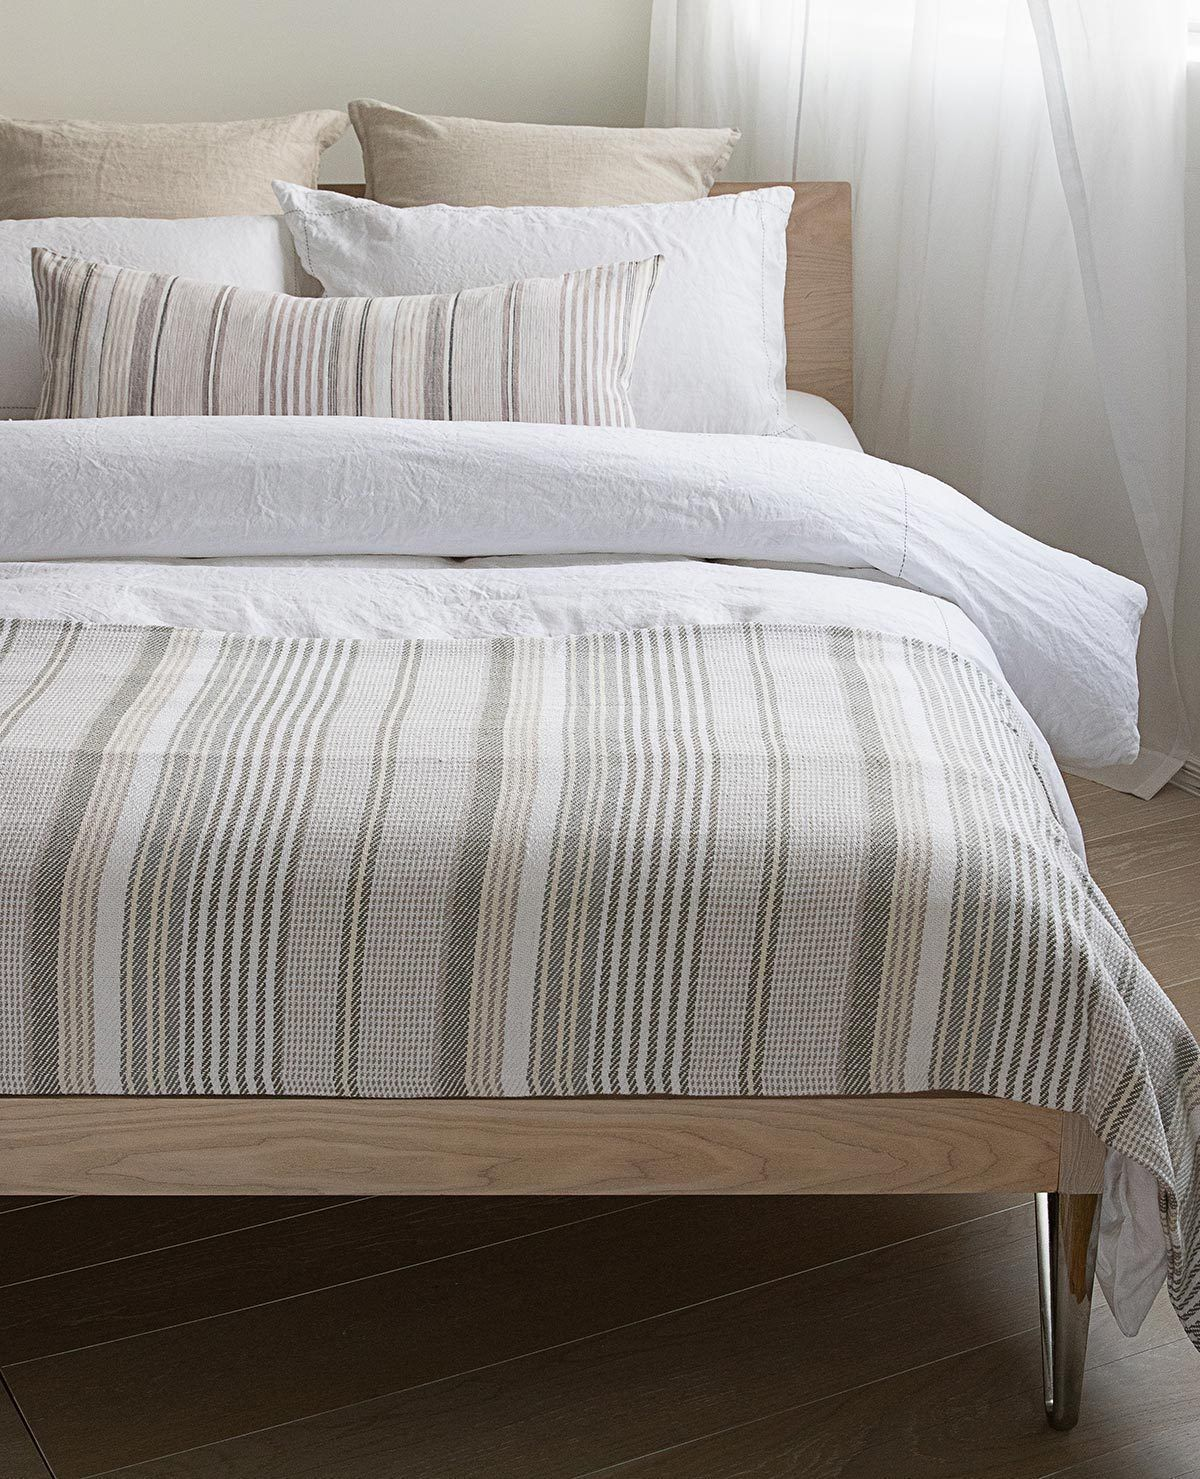 Gradation Blanket Grey Taupe Stripe White Linen Bedding